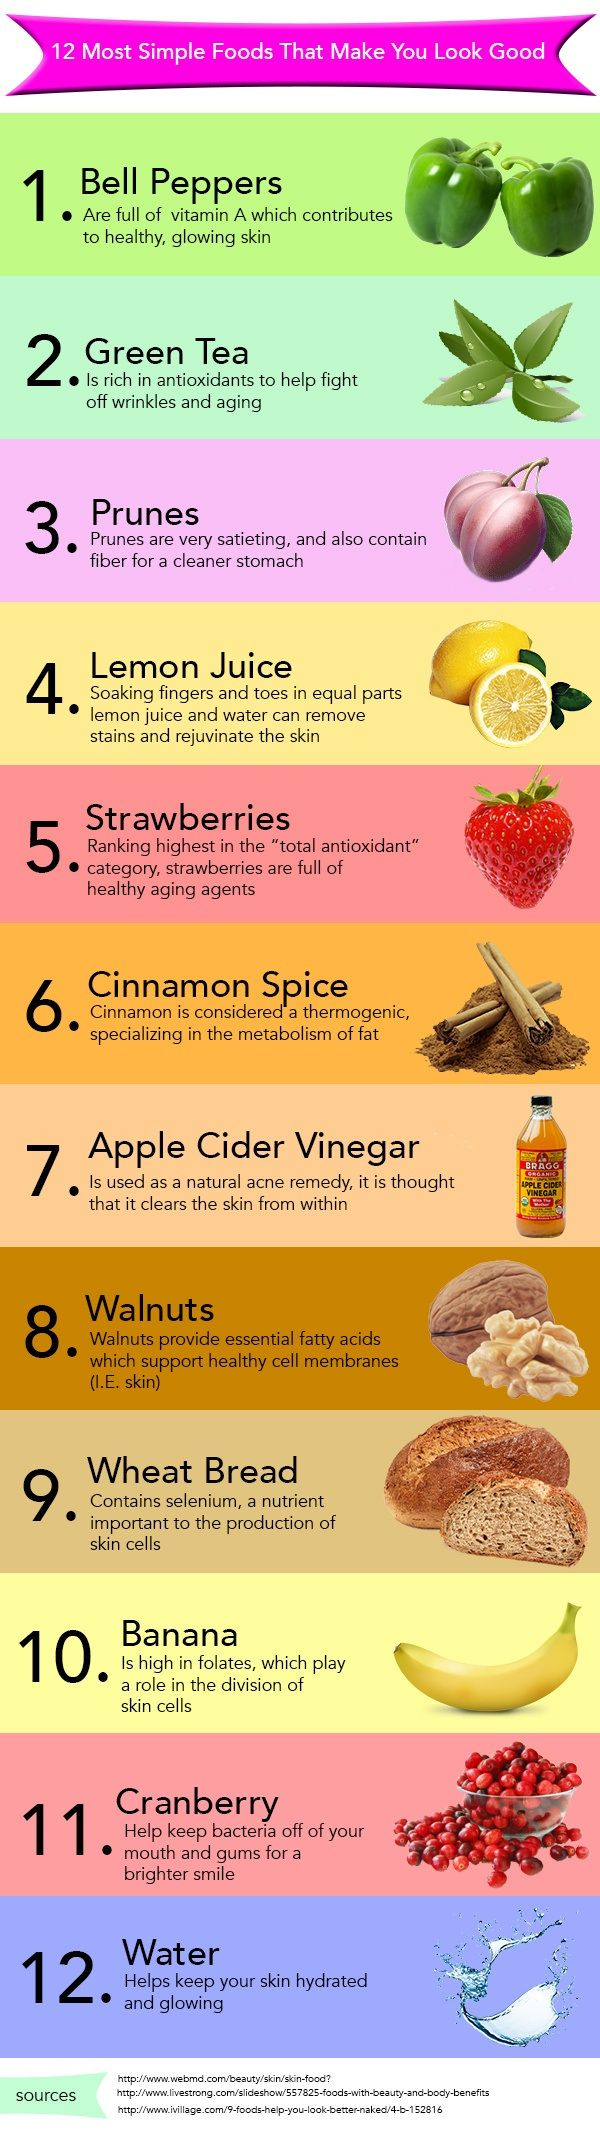 Daily diet for good health - Best 25 Most Healthy Foods Ideas On Pinterest Best Healthy Foods Best Food For Weight Loss And Best Diet Foods